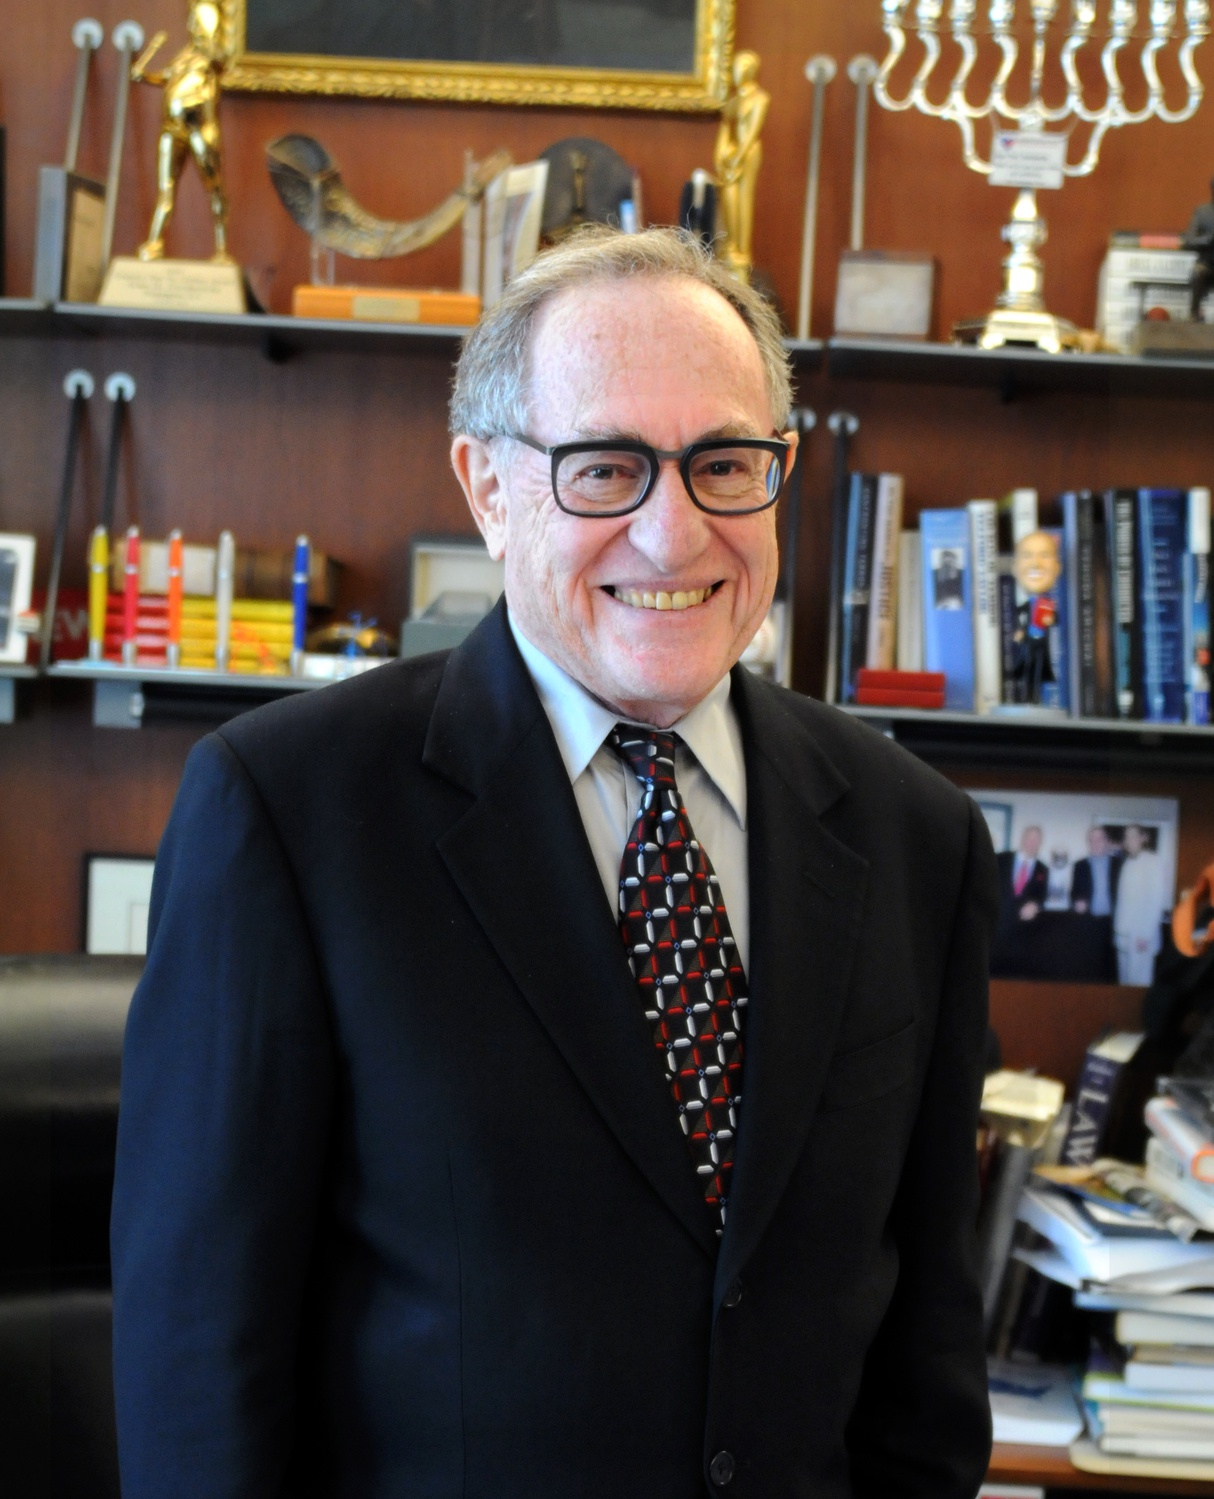 Harvard Law School professor emeritus Alan M. Dershowitz, pictured here in 2013.